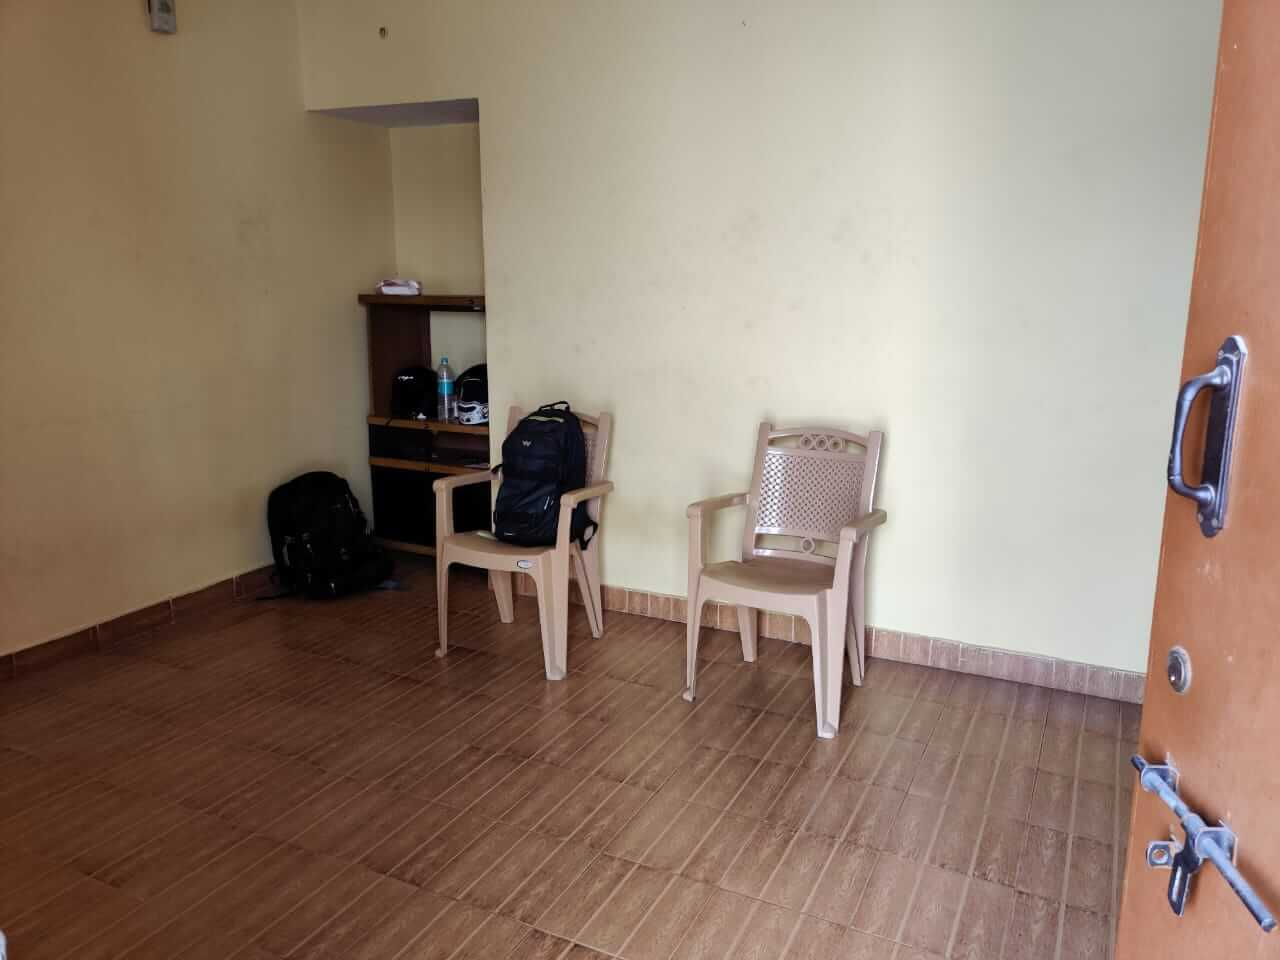 1bhk semi furnished house for rent available in bilekahalli behind IIMB Bangalore